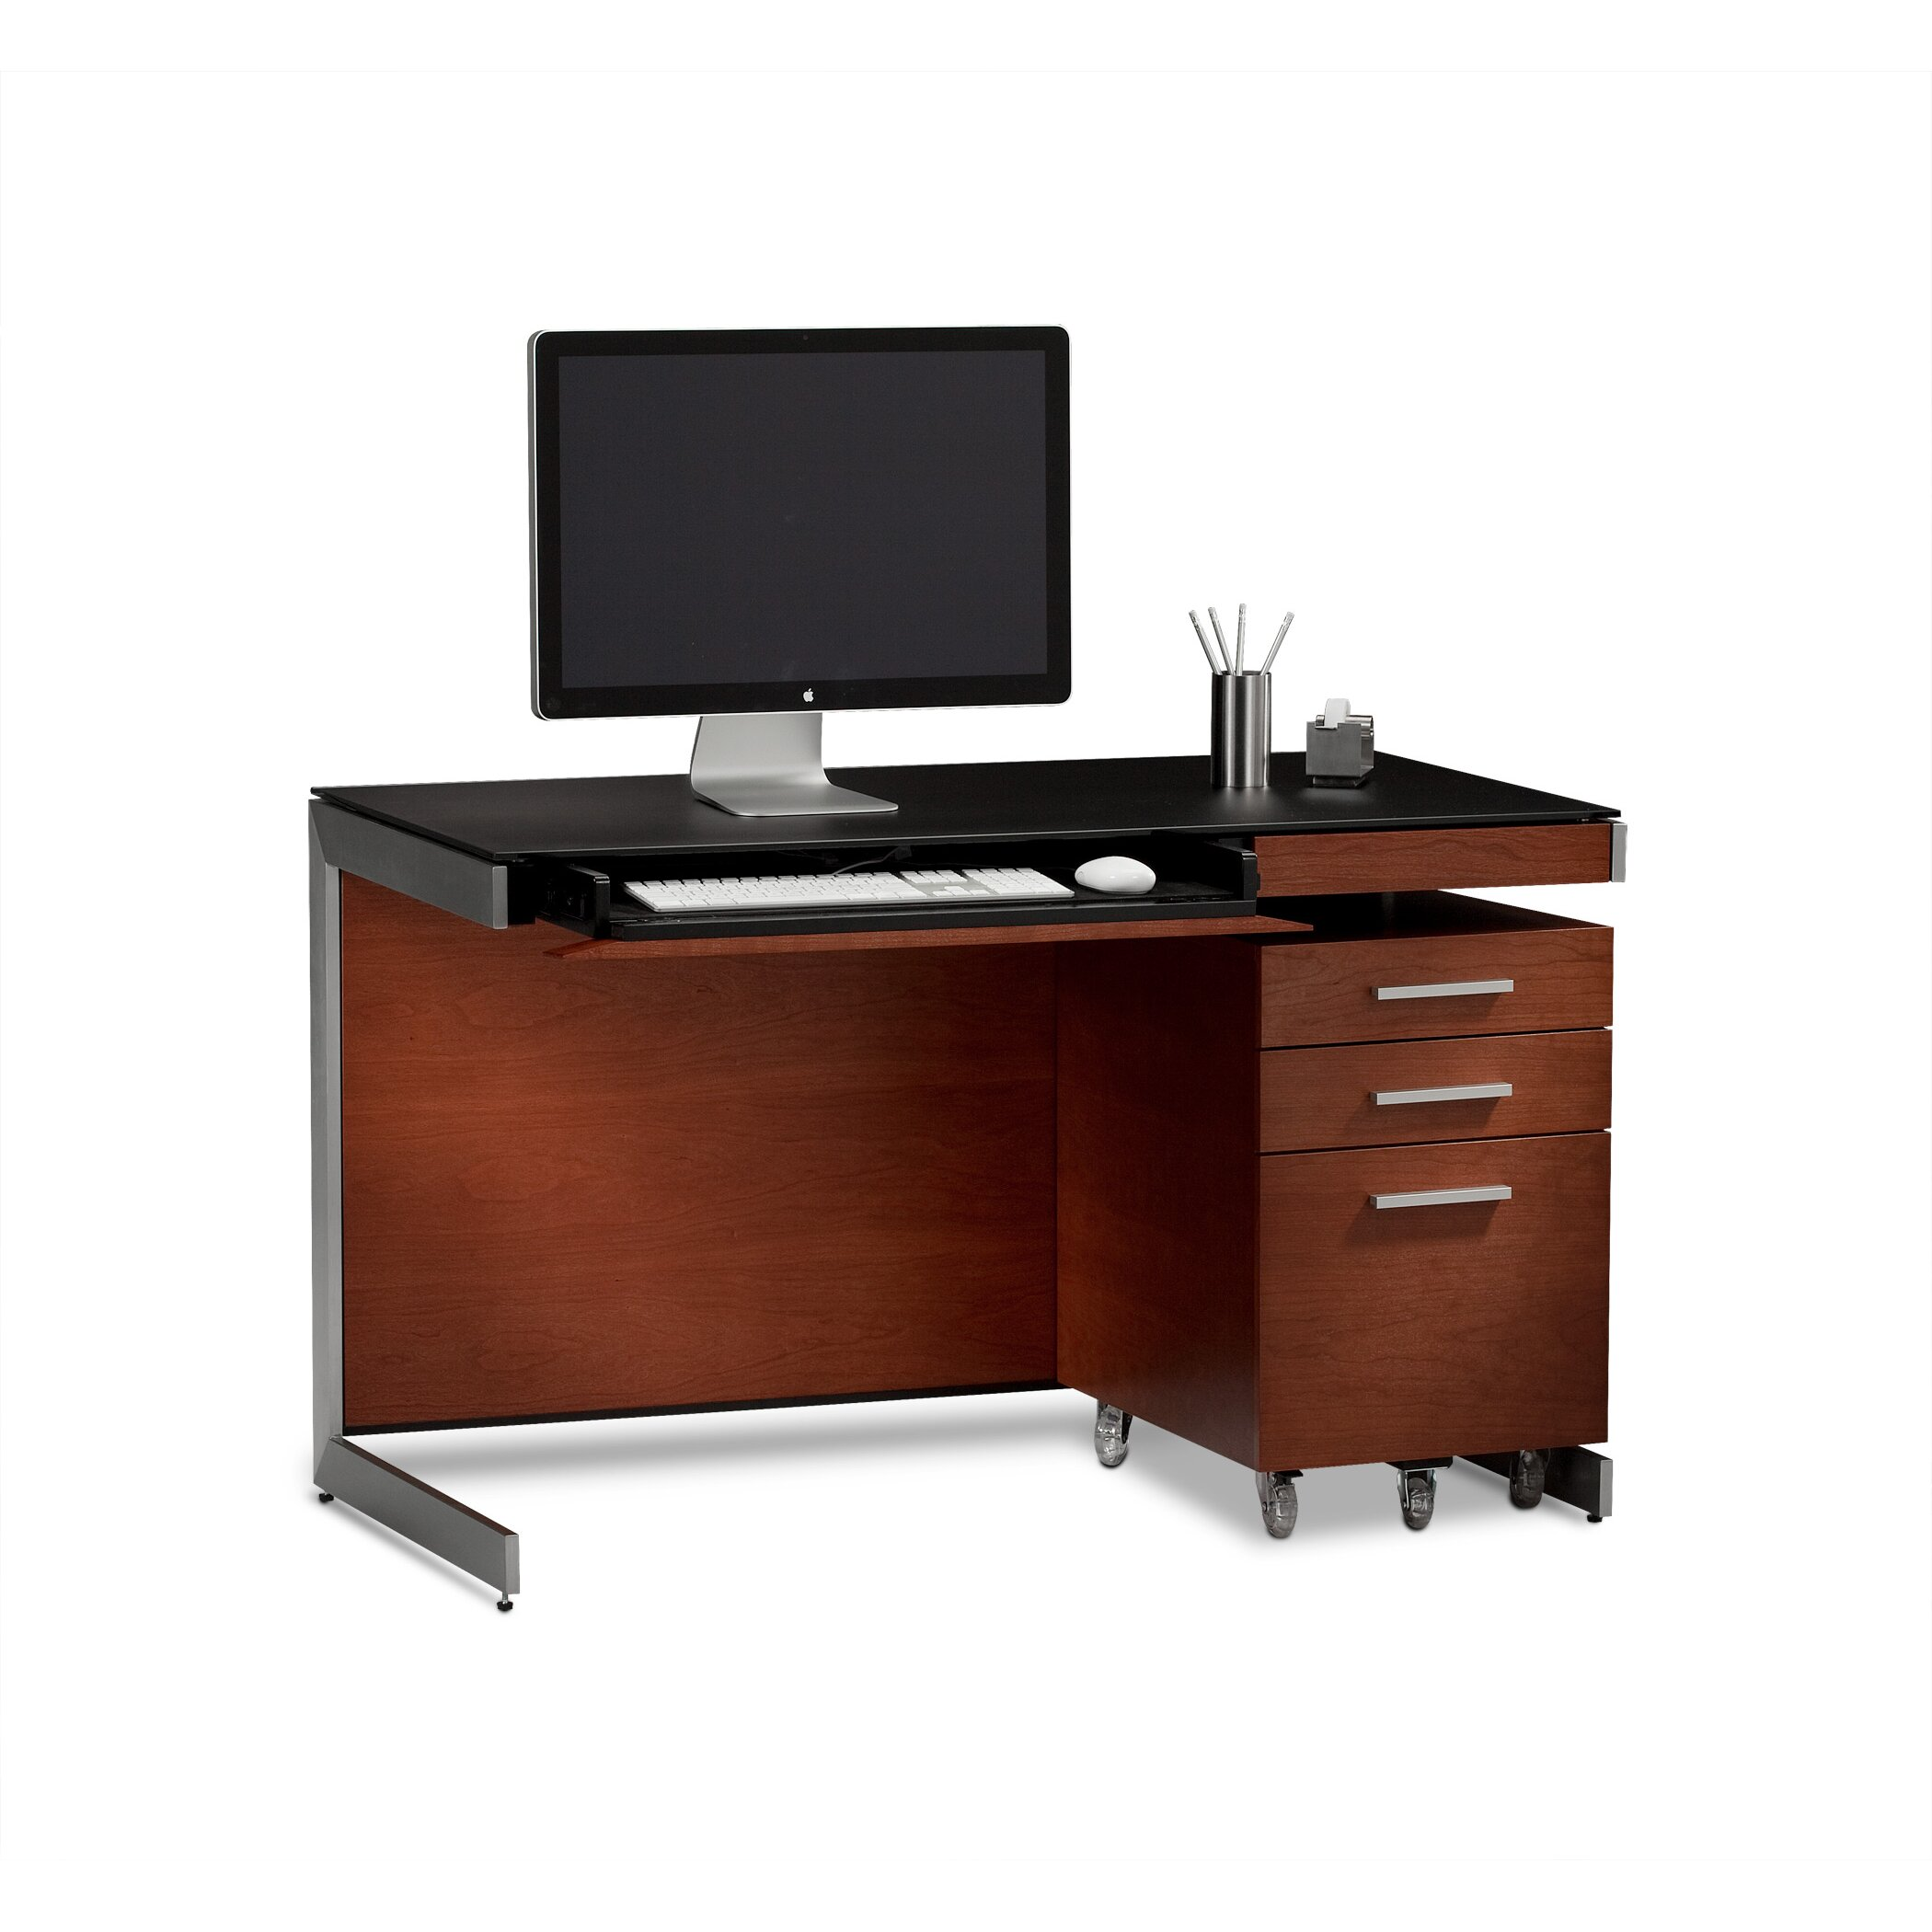 Desk Cabinet: BDI USA Sequel Compact Desk & Reviews